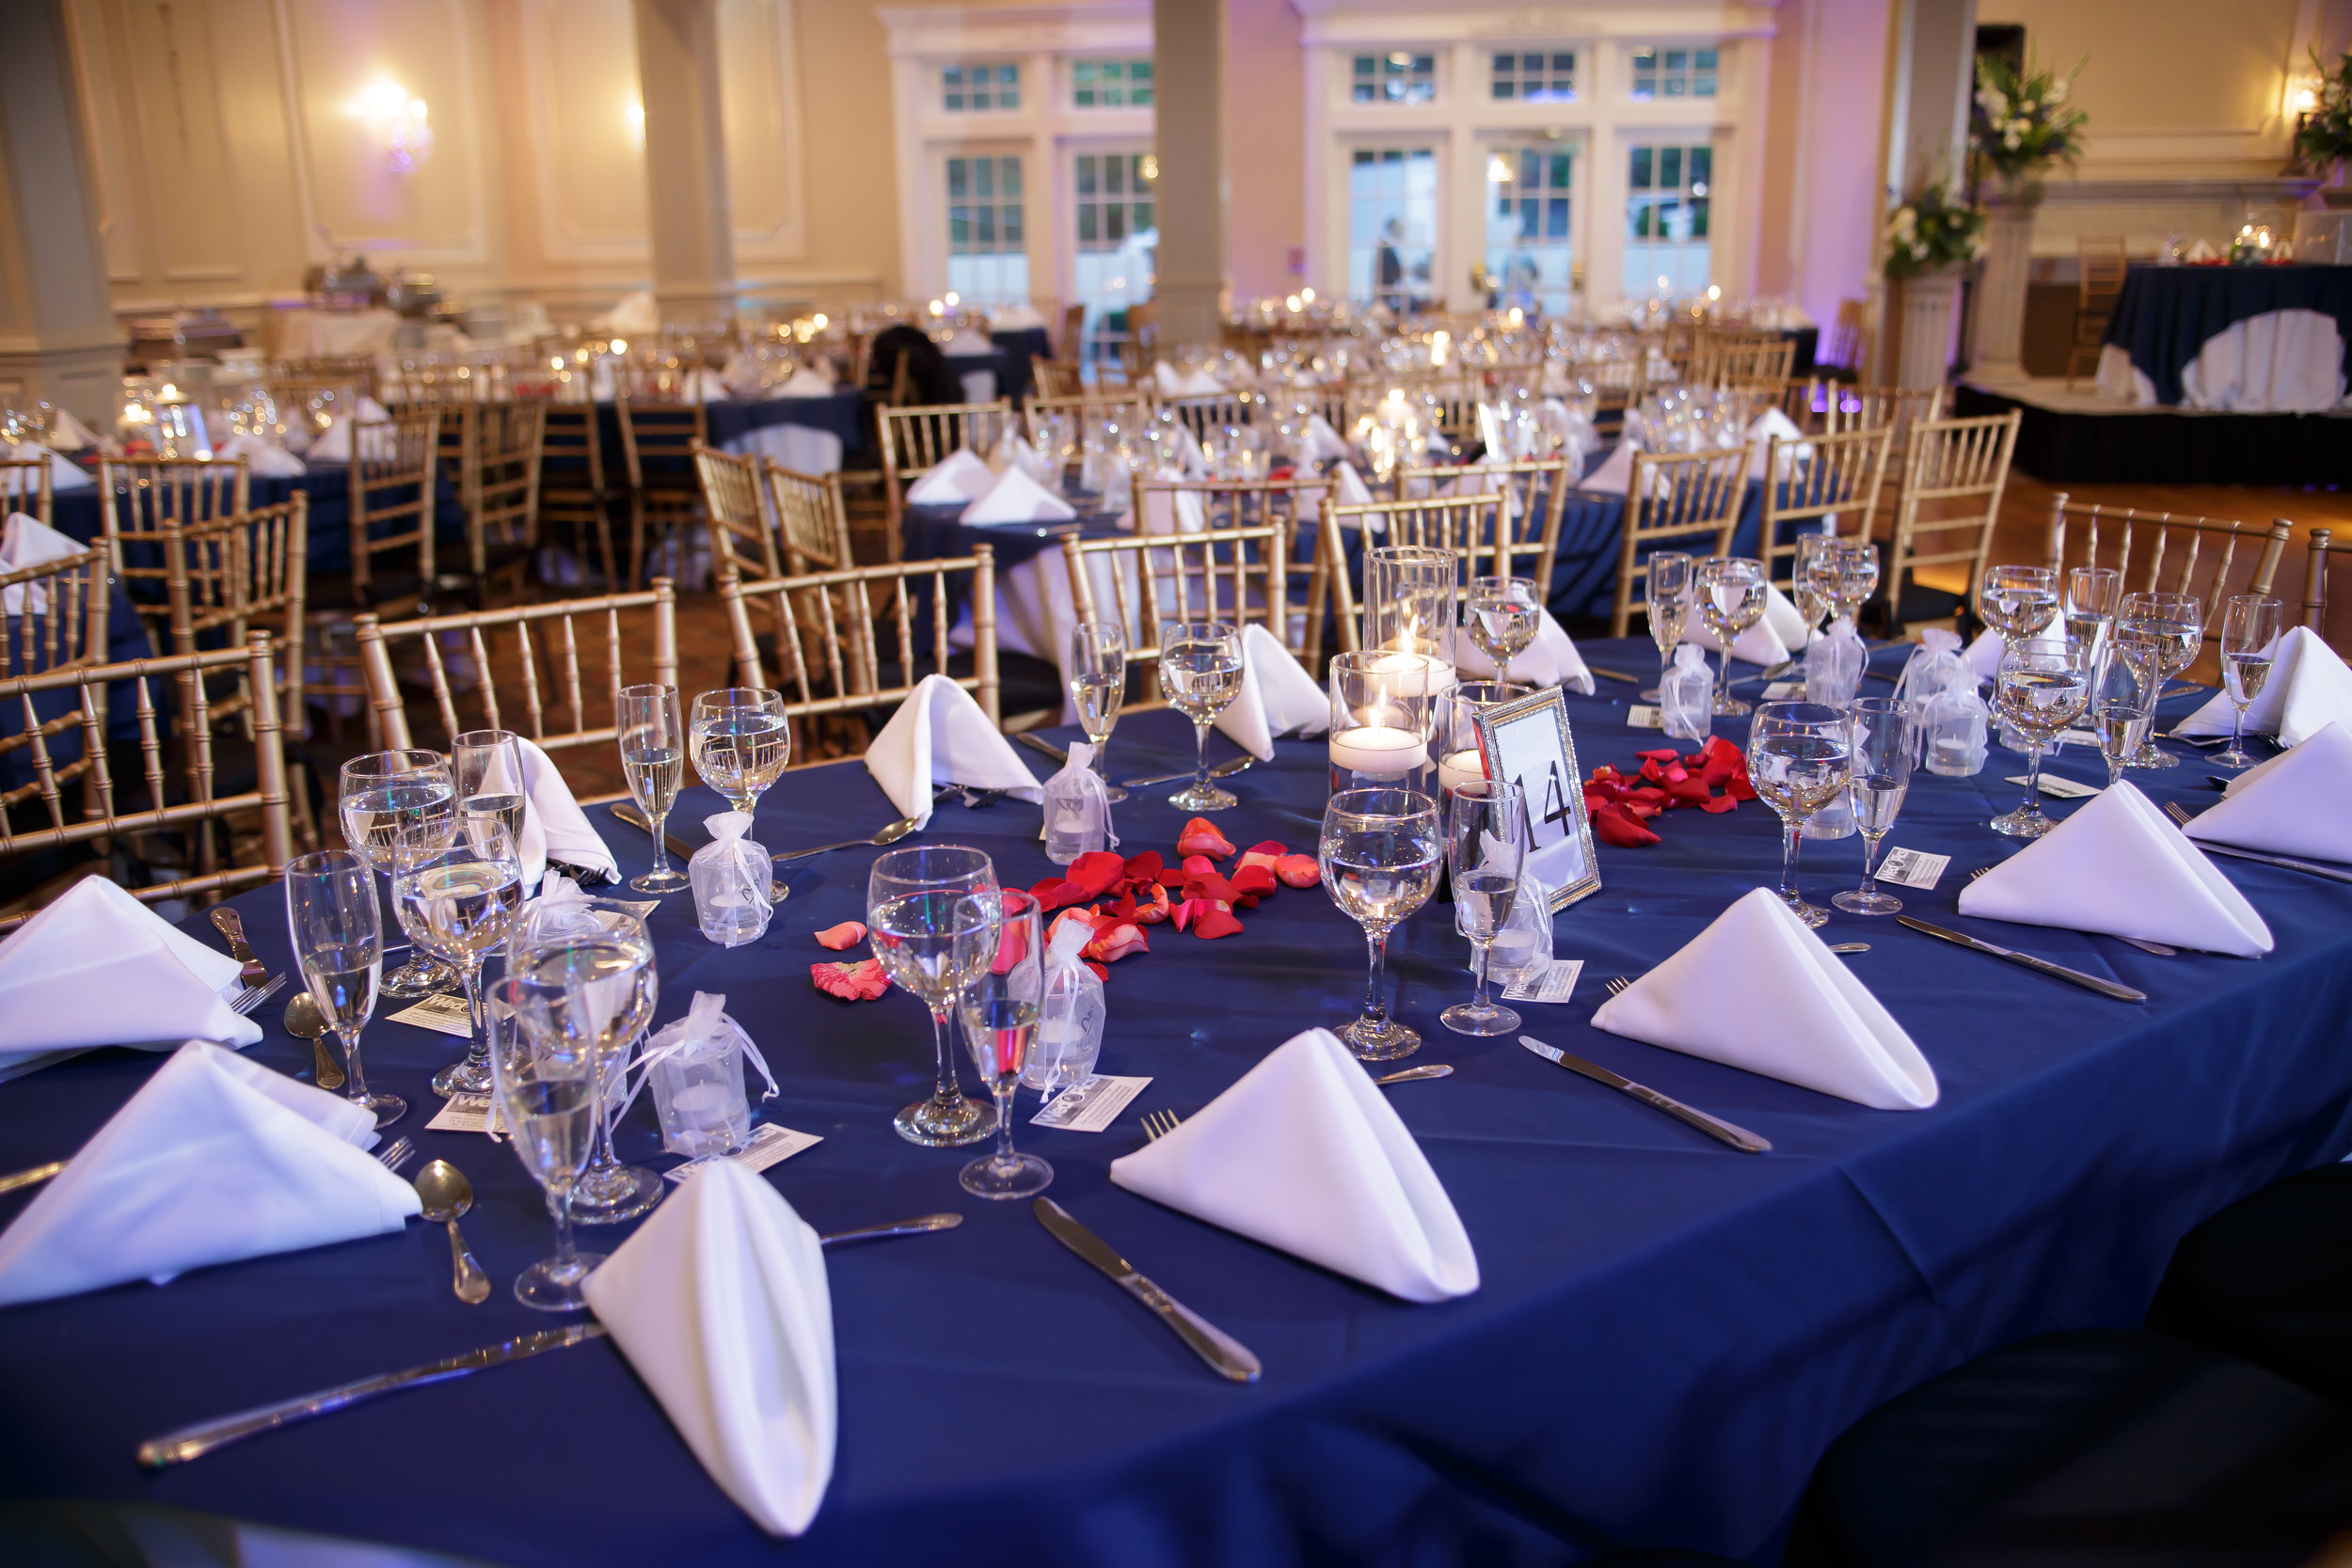 Wedding_Reception_Simple_PlaceSetting_Navy_2016.jpg